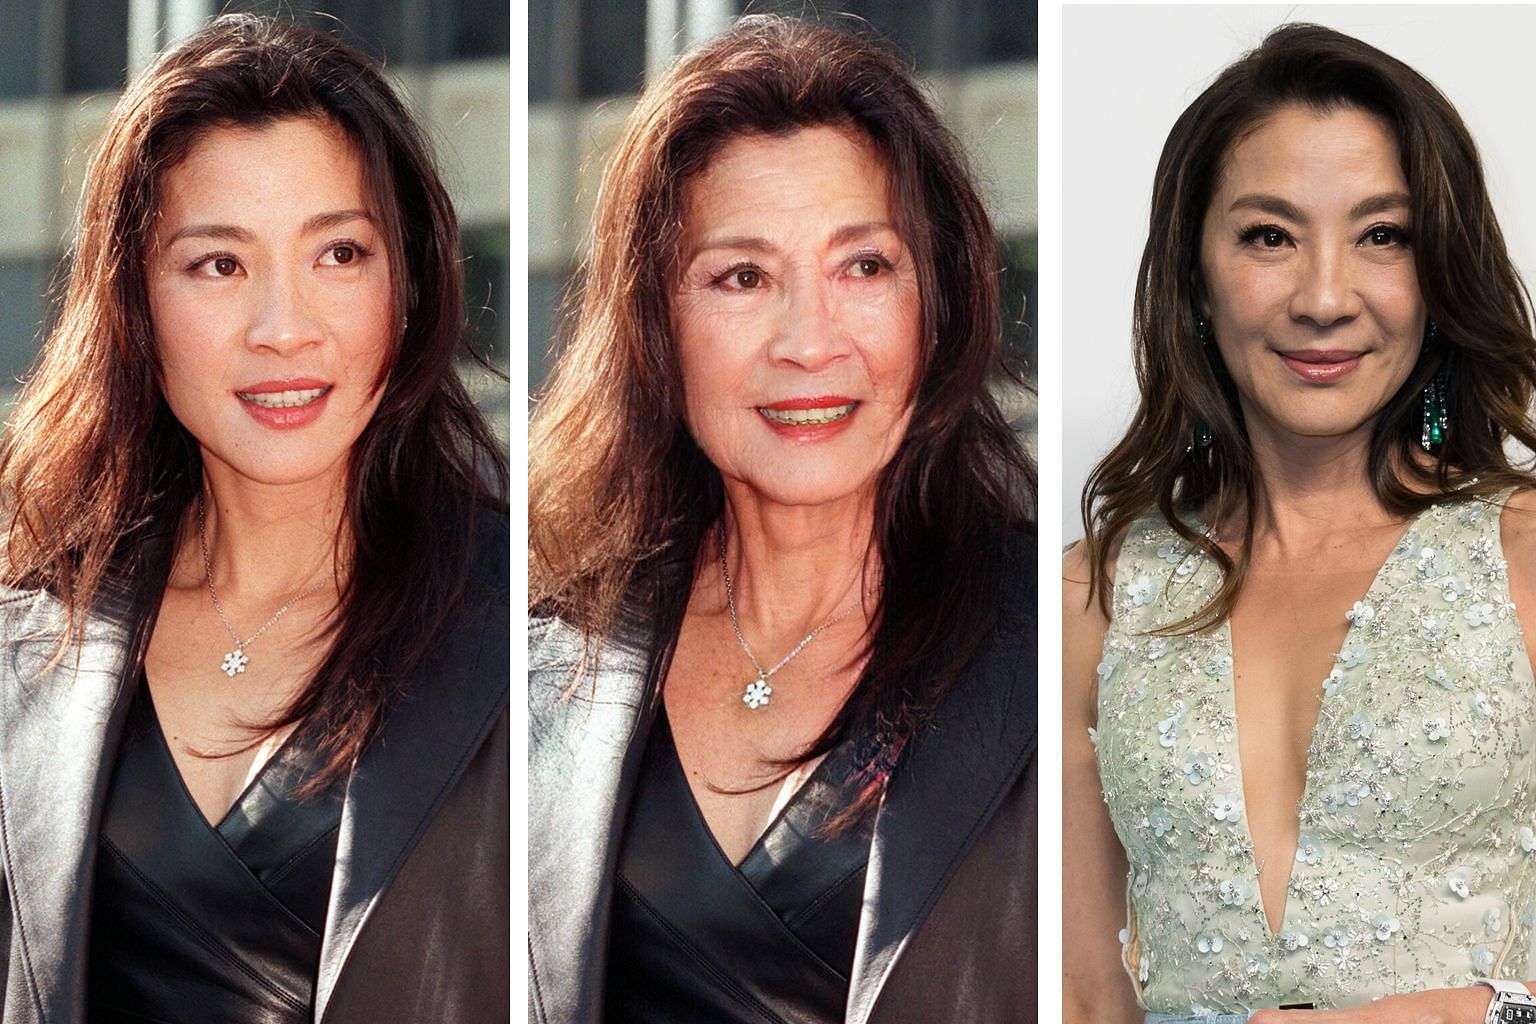 Malaysian actress Michelle Yeoh in her younger days (left), on FaceApp (centre) and currently (right).